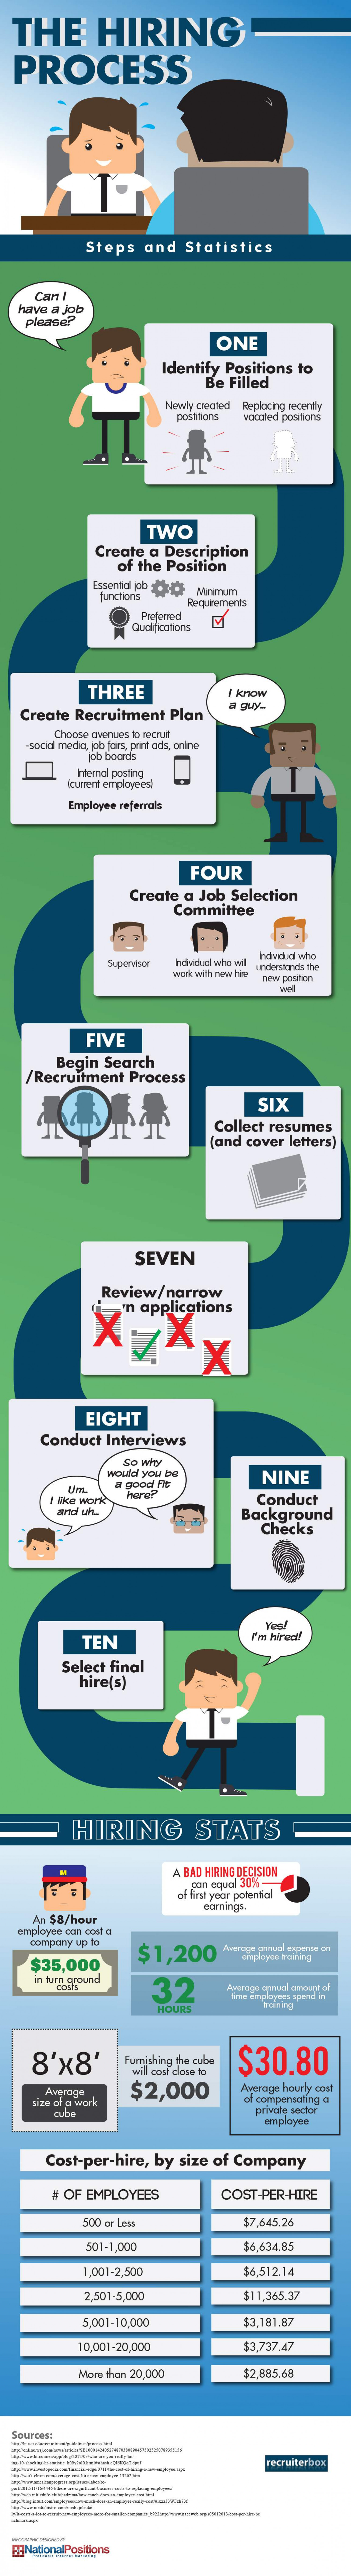 The Hiring Process: Steps and Statistics Infographic